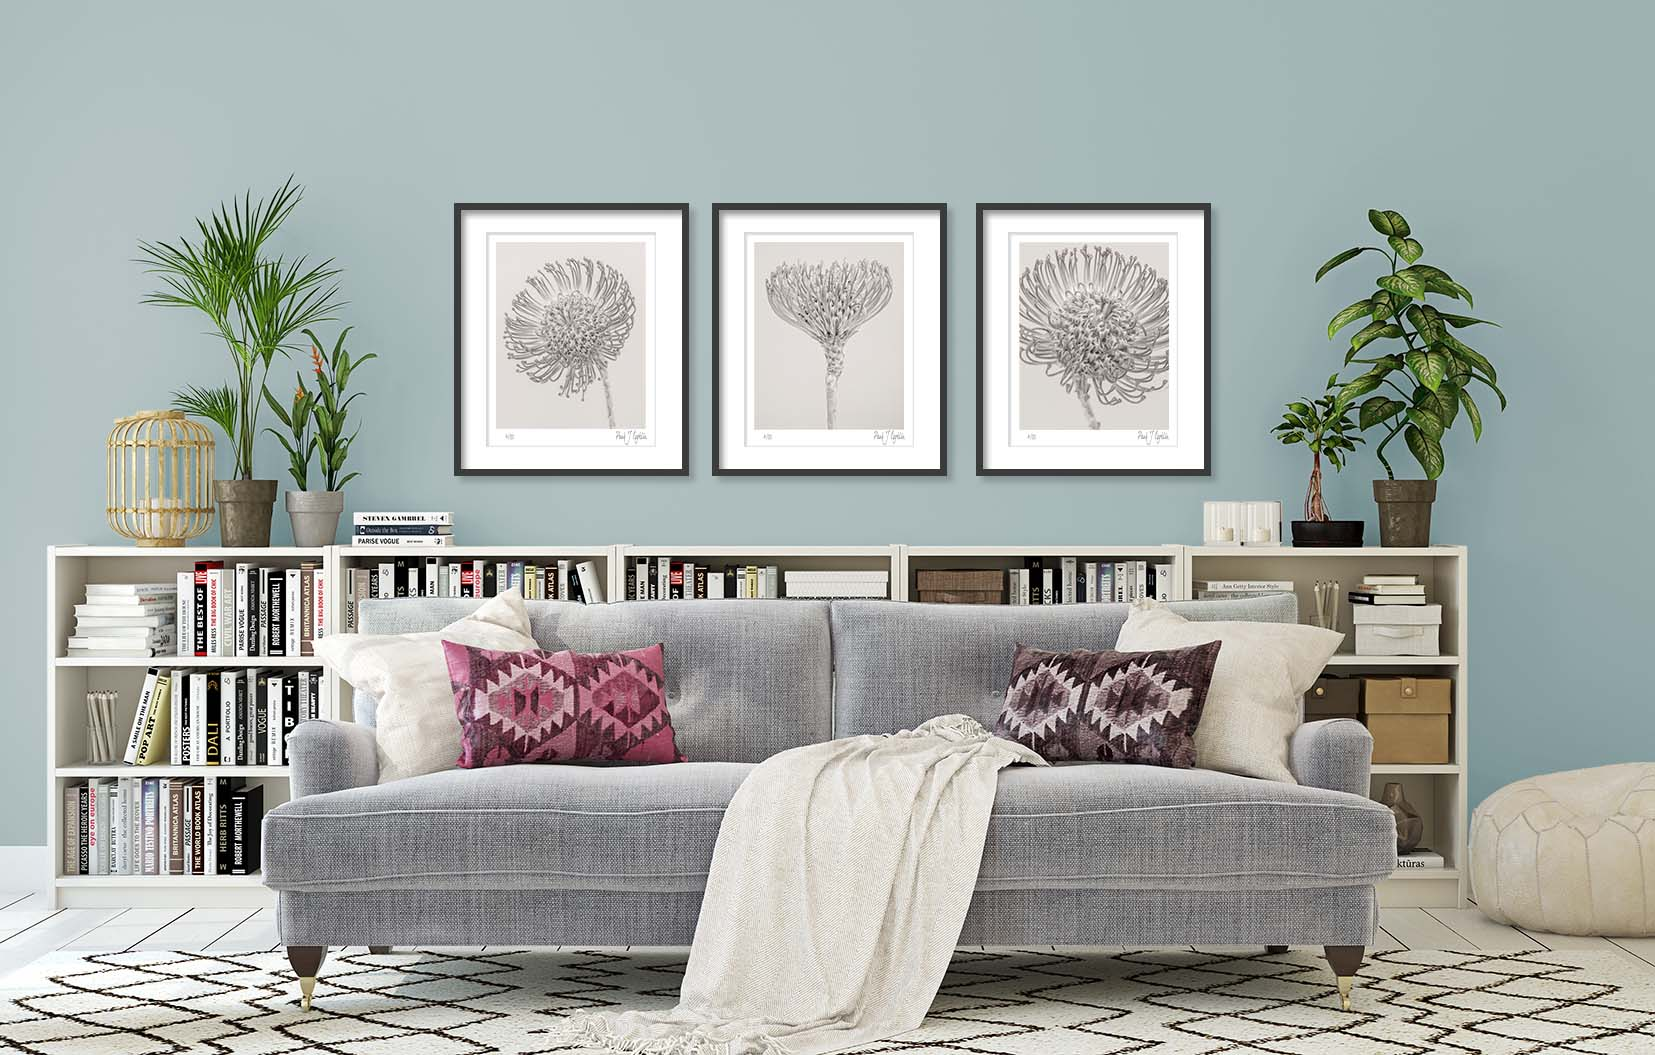 Leucospermum cordifolium (Protea) I, II + III. Three monochrome prints of a South African plant are limited edition prints by fine art photographer Paul Coghlin FBIPP. These prints are part of the wider 'Botanic' series of photographic floral studies.